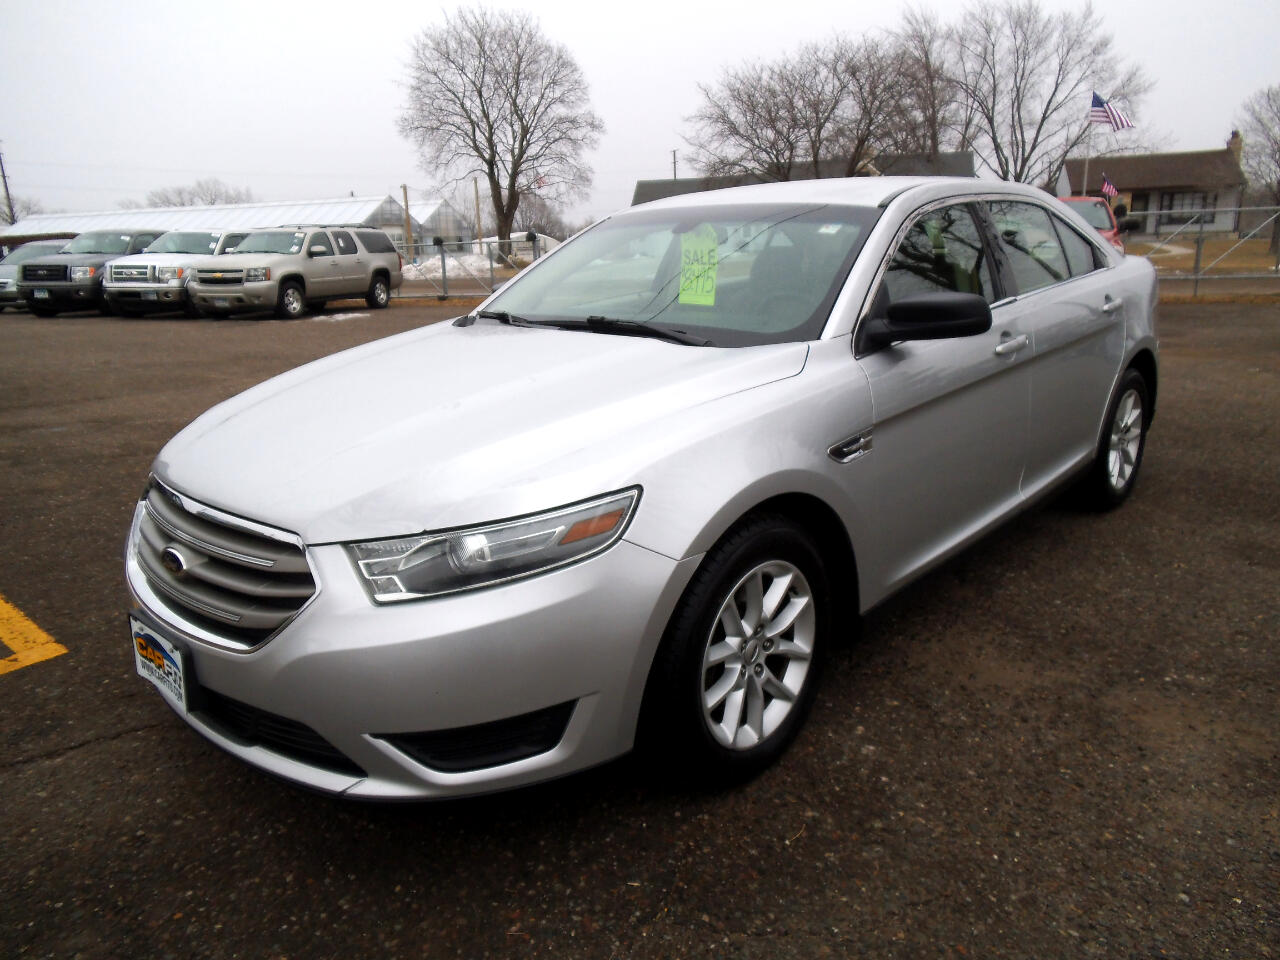 2013 Ford Taurus 4dr Sdn SE FWD